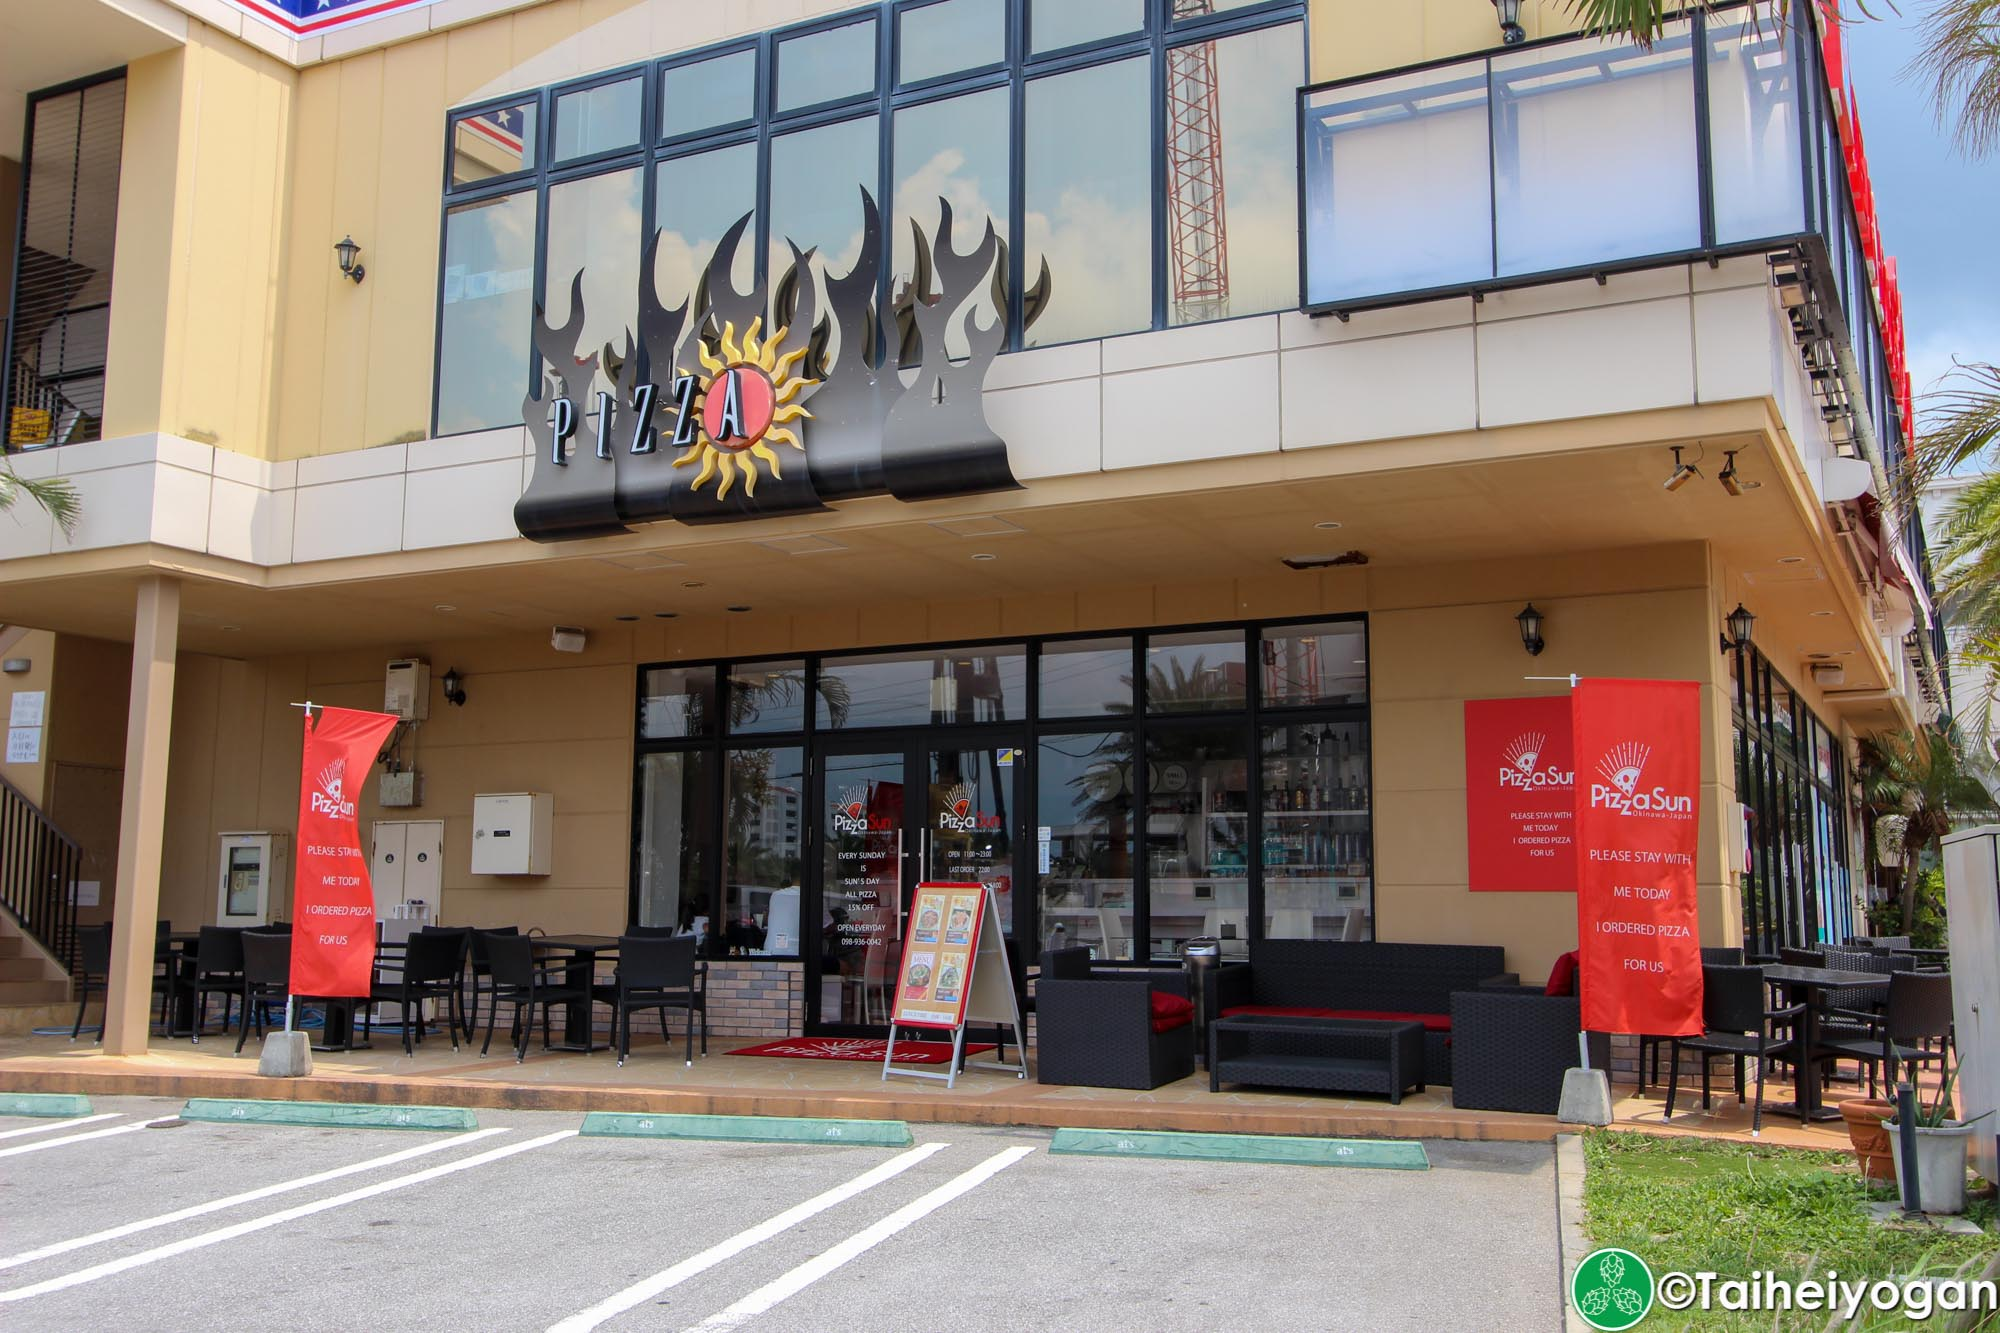 Pizza Sun Okinawa - Entrance